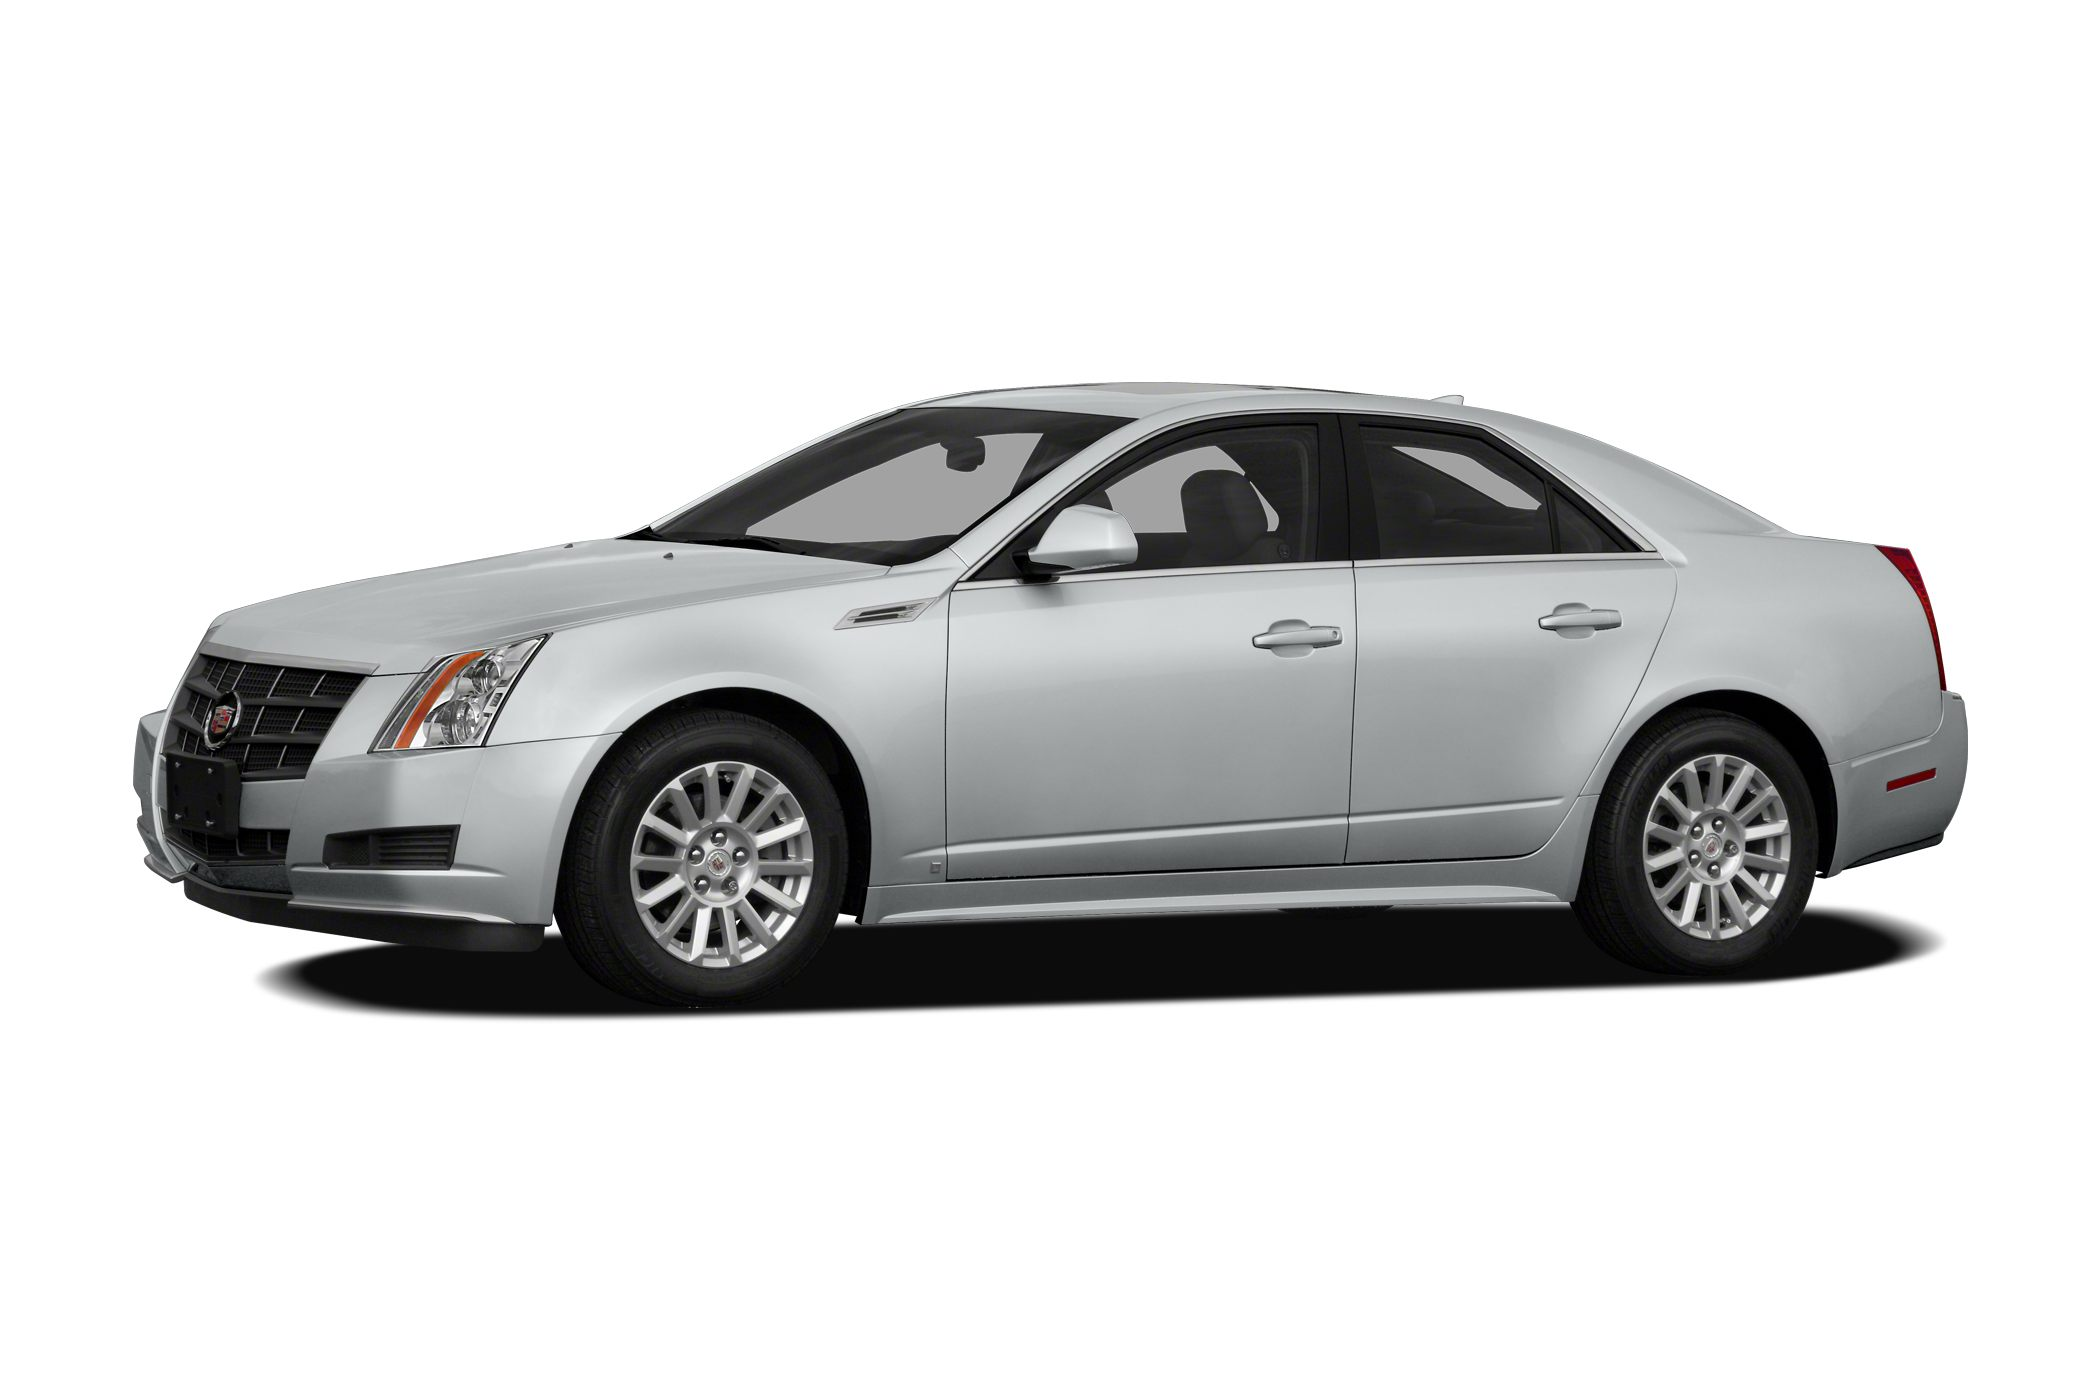 2011 Cadillac CTS Performance Coupe for sale in Montebello for $21,999 with 50,271 miles